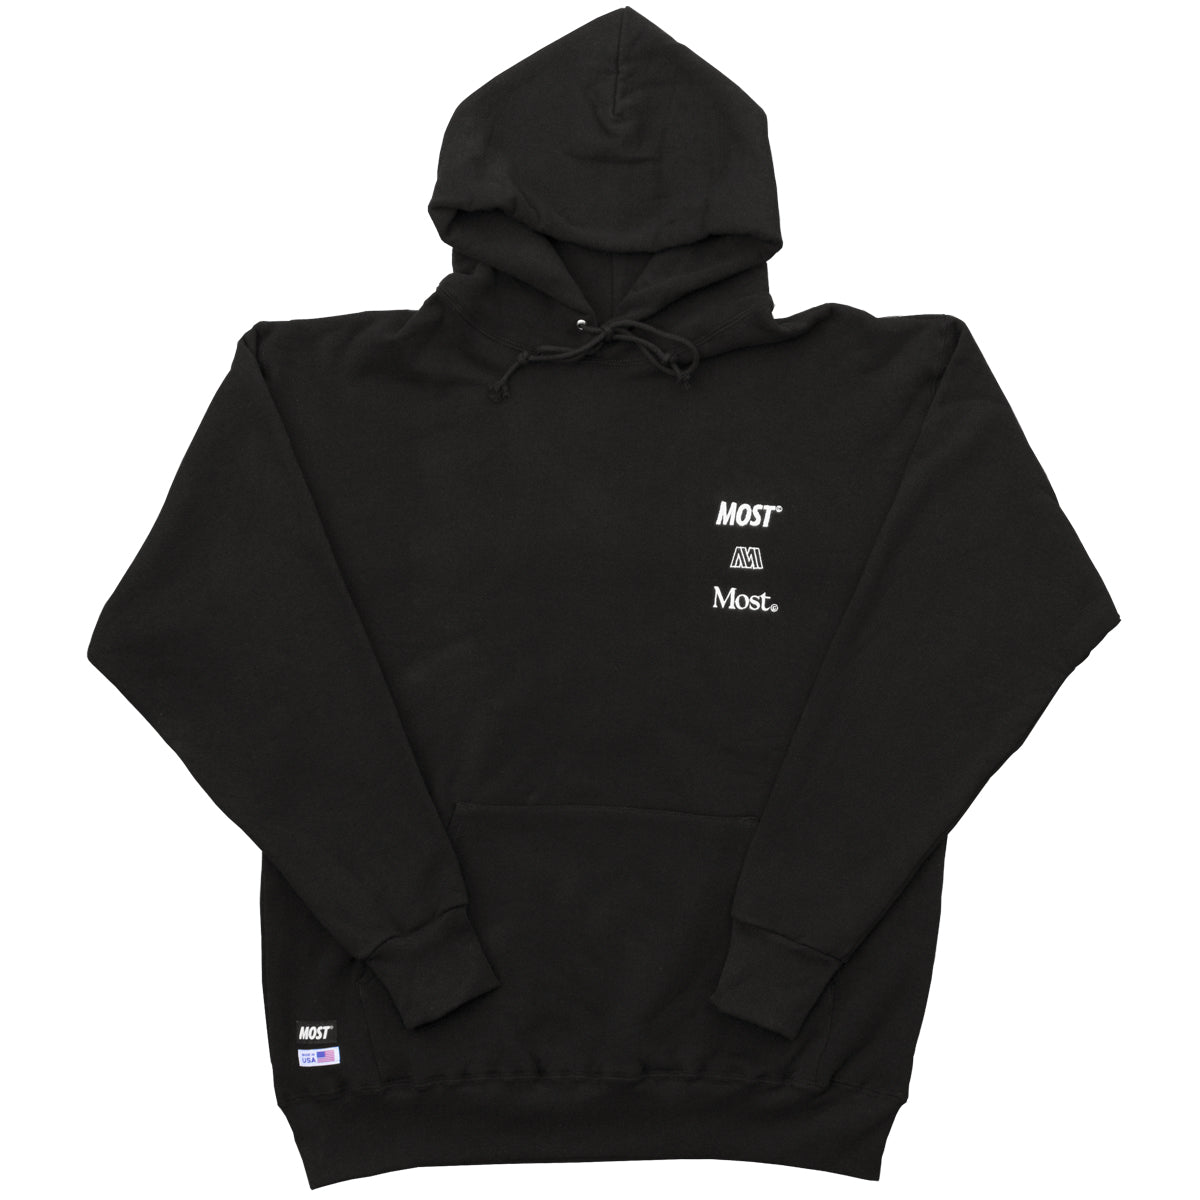 Made in USA Hoodie - Black